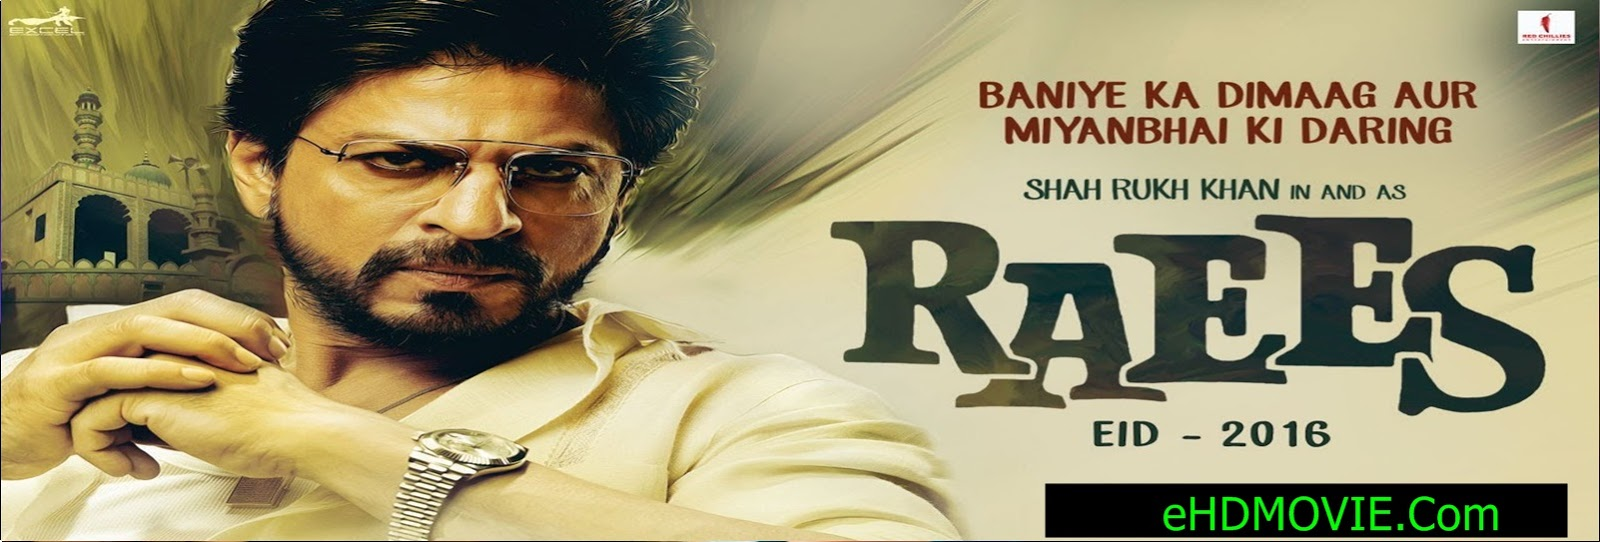 Raees 2017 Full Movie Hindi 720p - 480p ORG BRRip 400MB - 550MB - 1.2GB ESubs Free Download